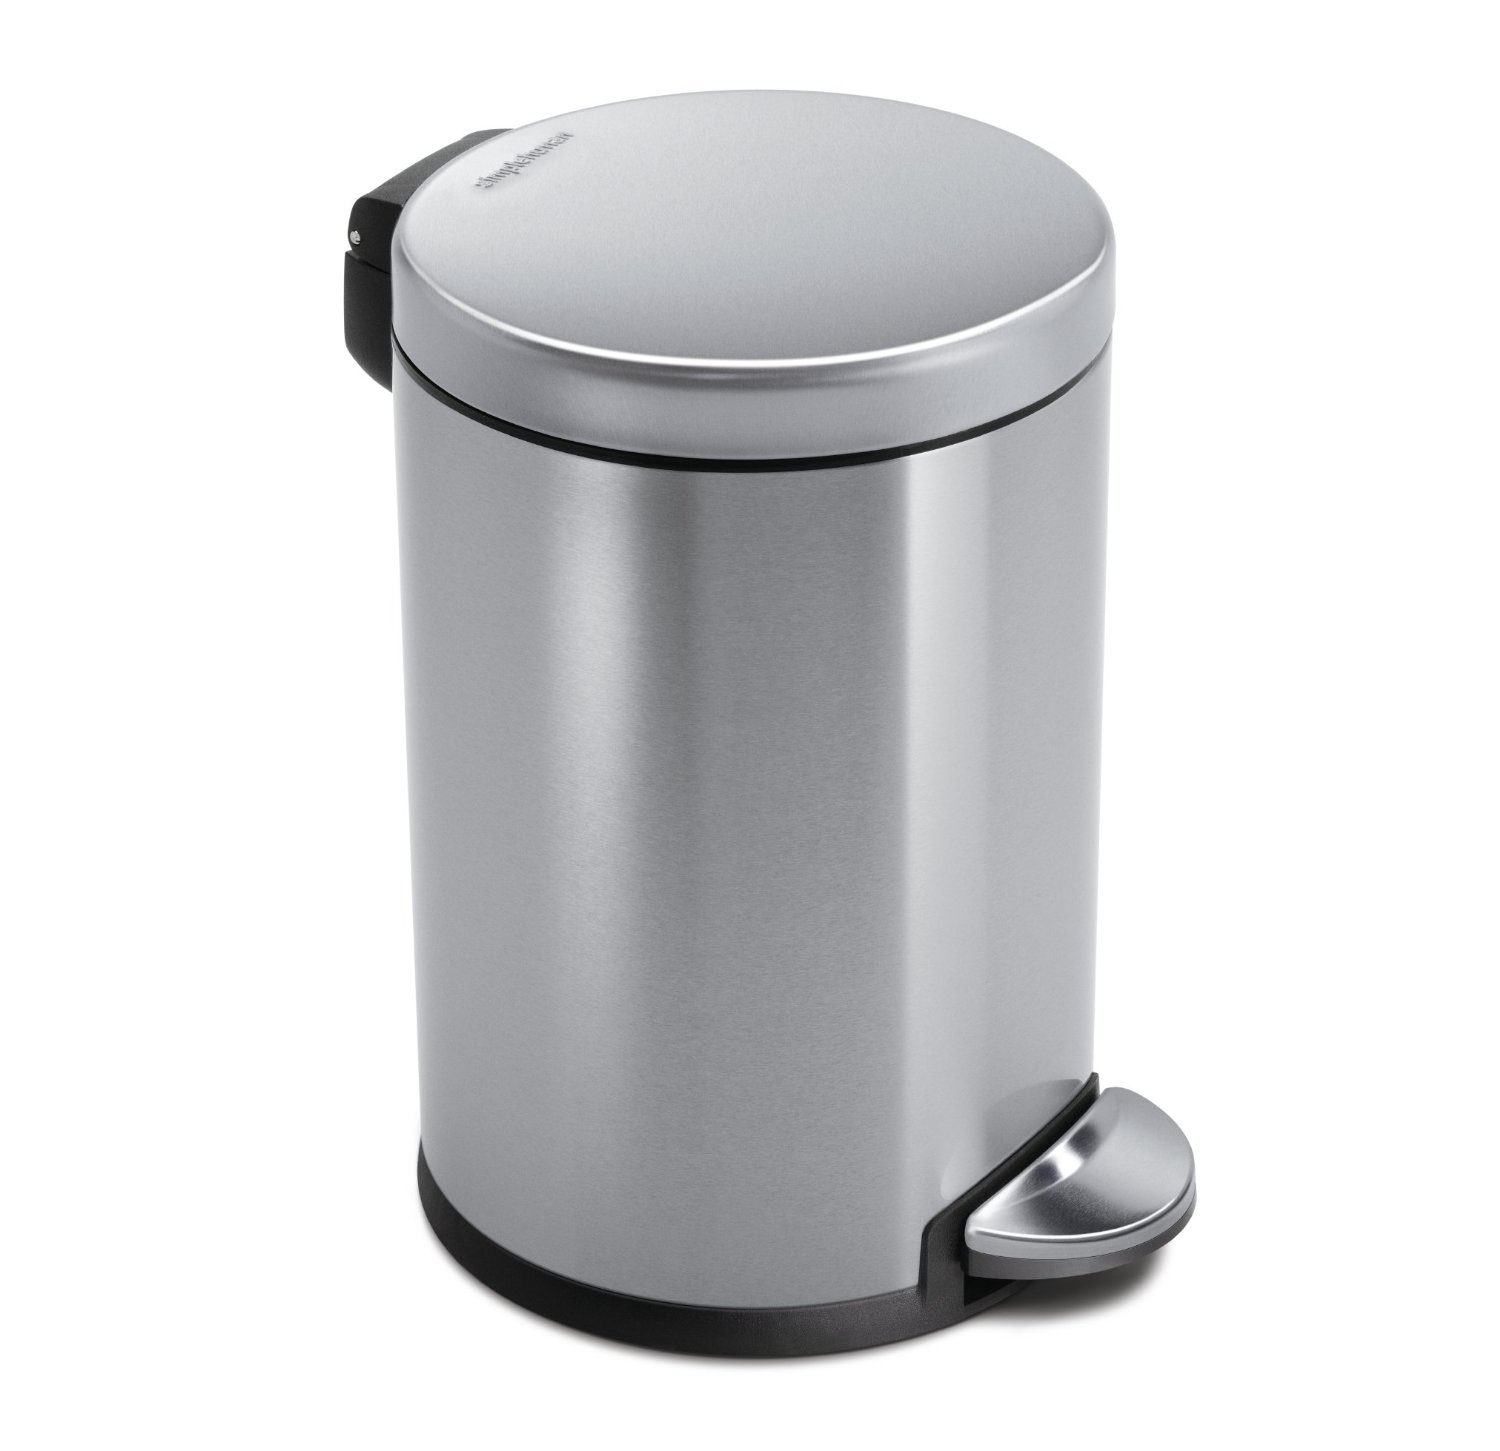 simplehuman Round Step Can for Bathroom or Office